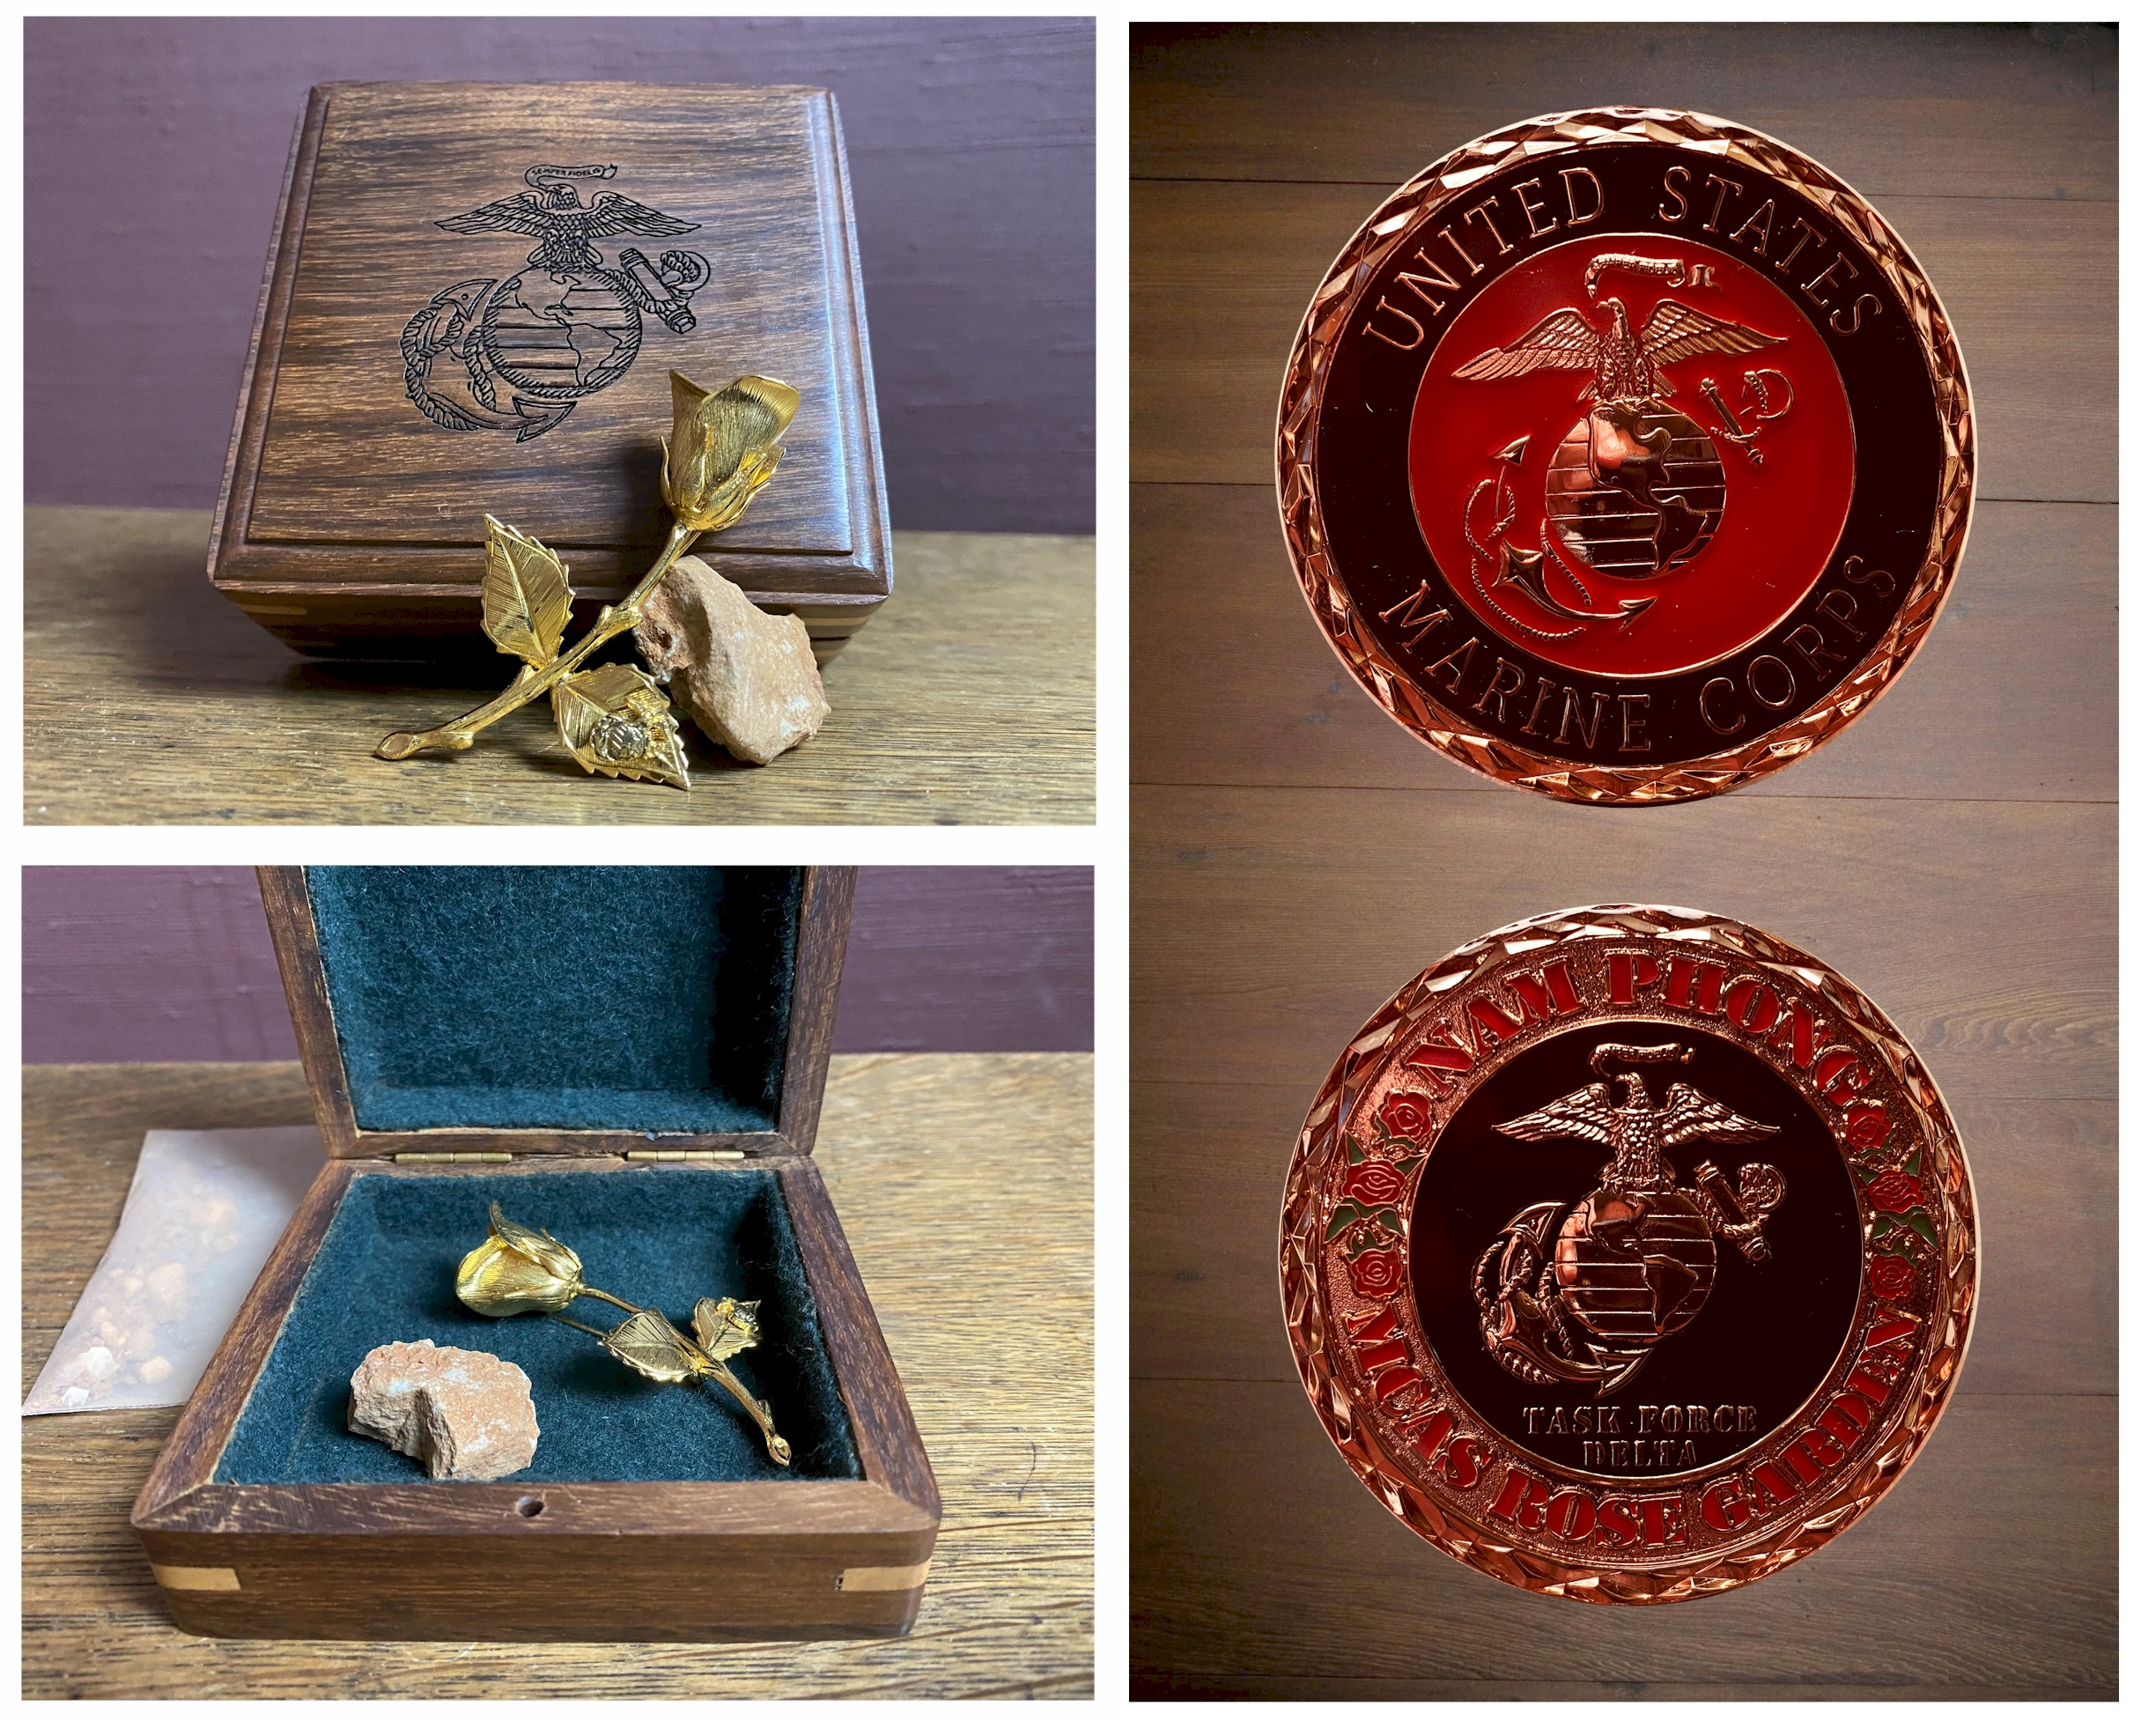 Nam Phong Keepsake Box with MCAS Challenge Coin, Sweetheart Pin and Soil from the MCAS Rose Garden R